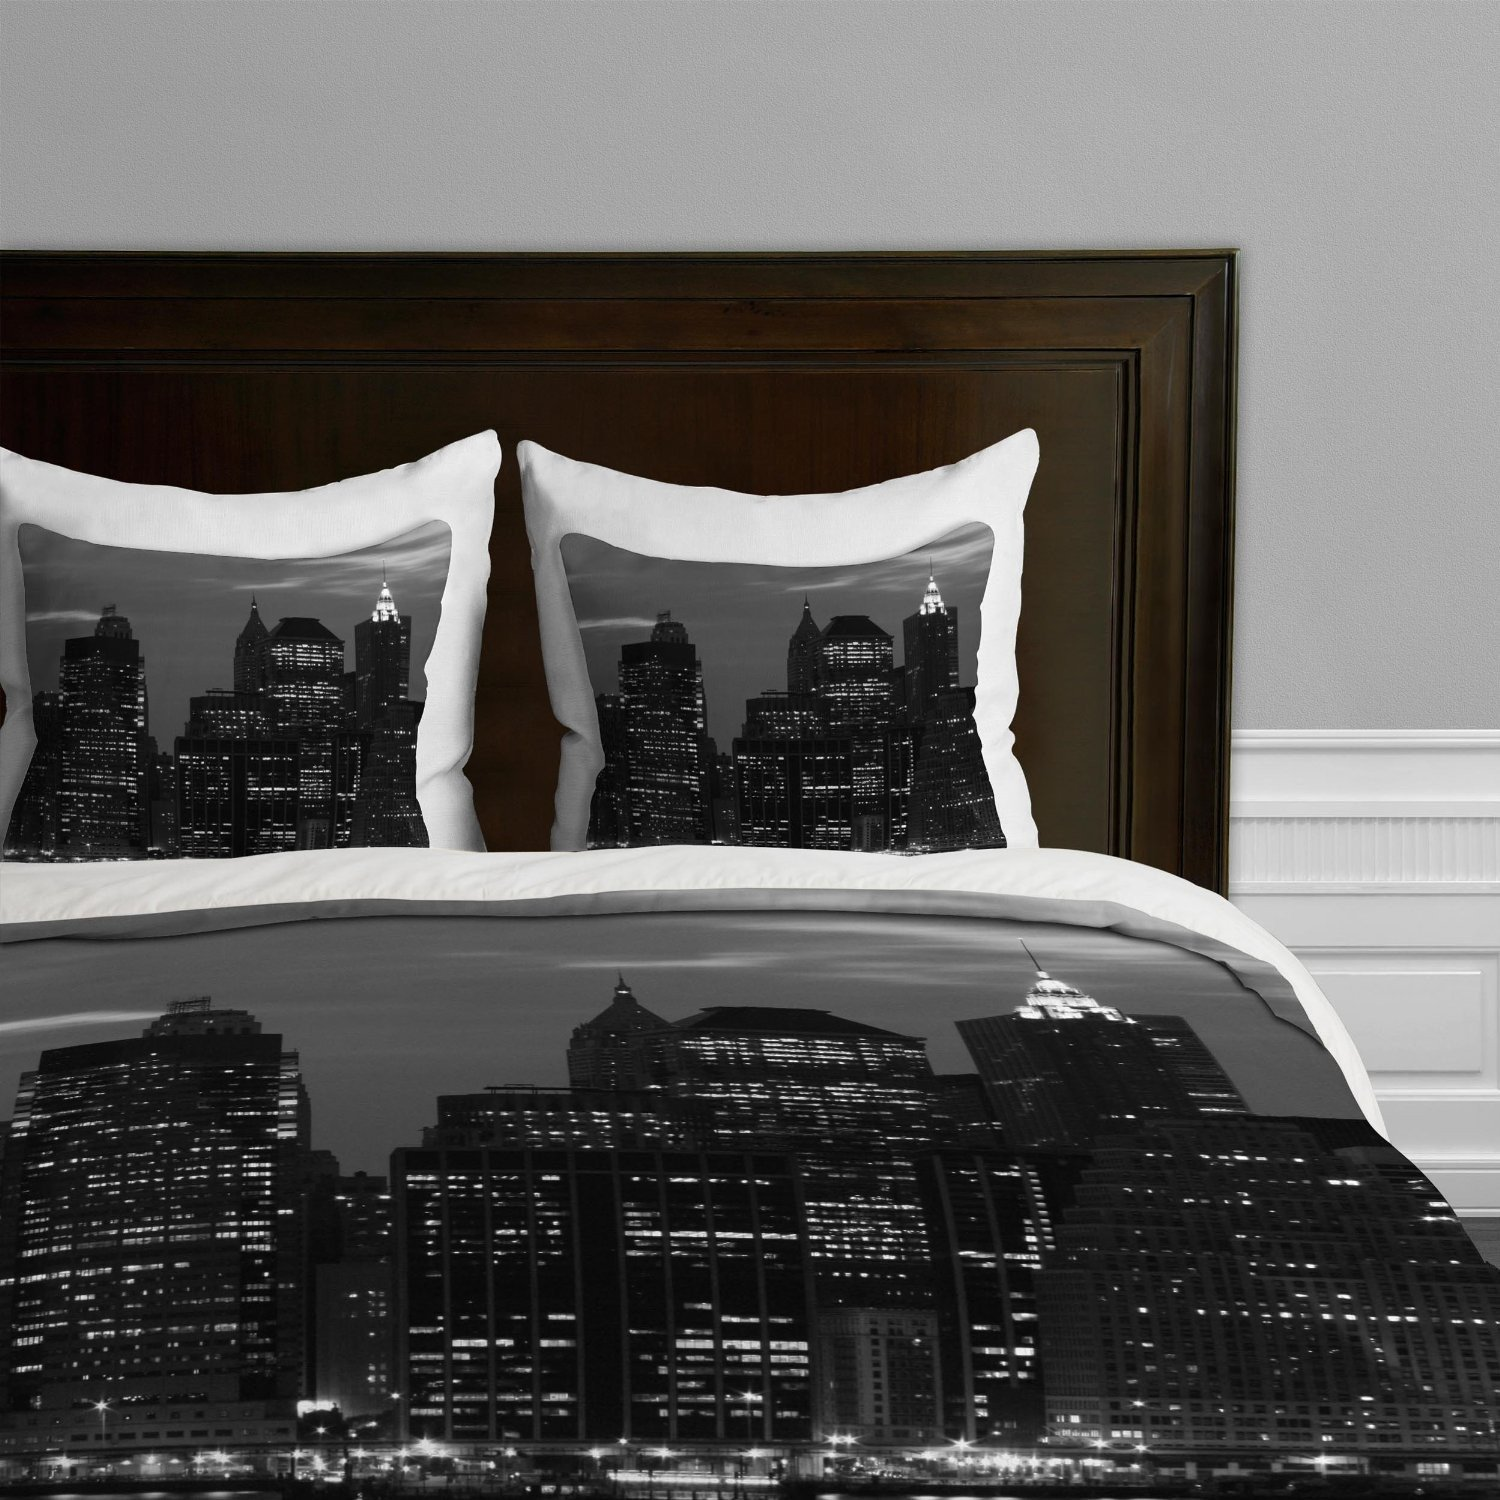 New York themed Home Decor Best Of New York City Skyline Bedding & Nyc themed Bedroom Ideas